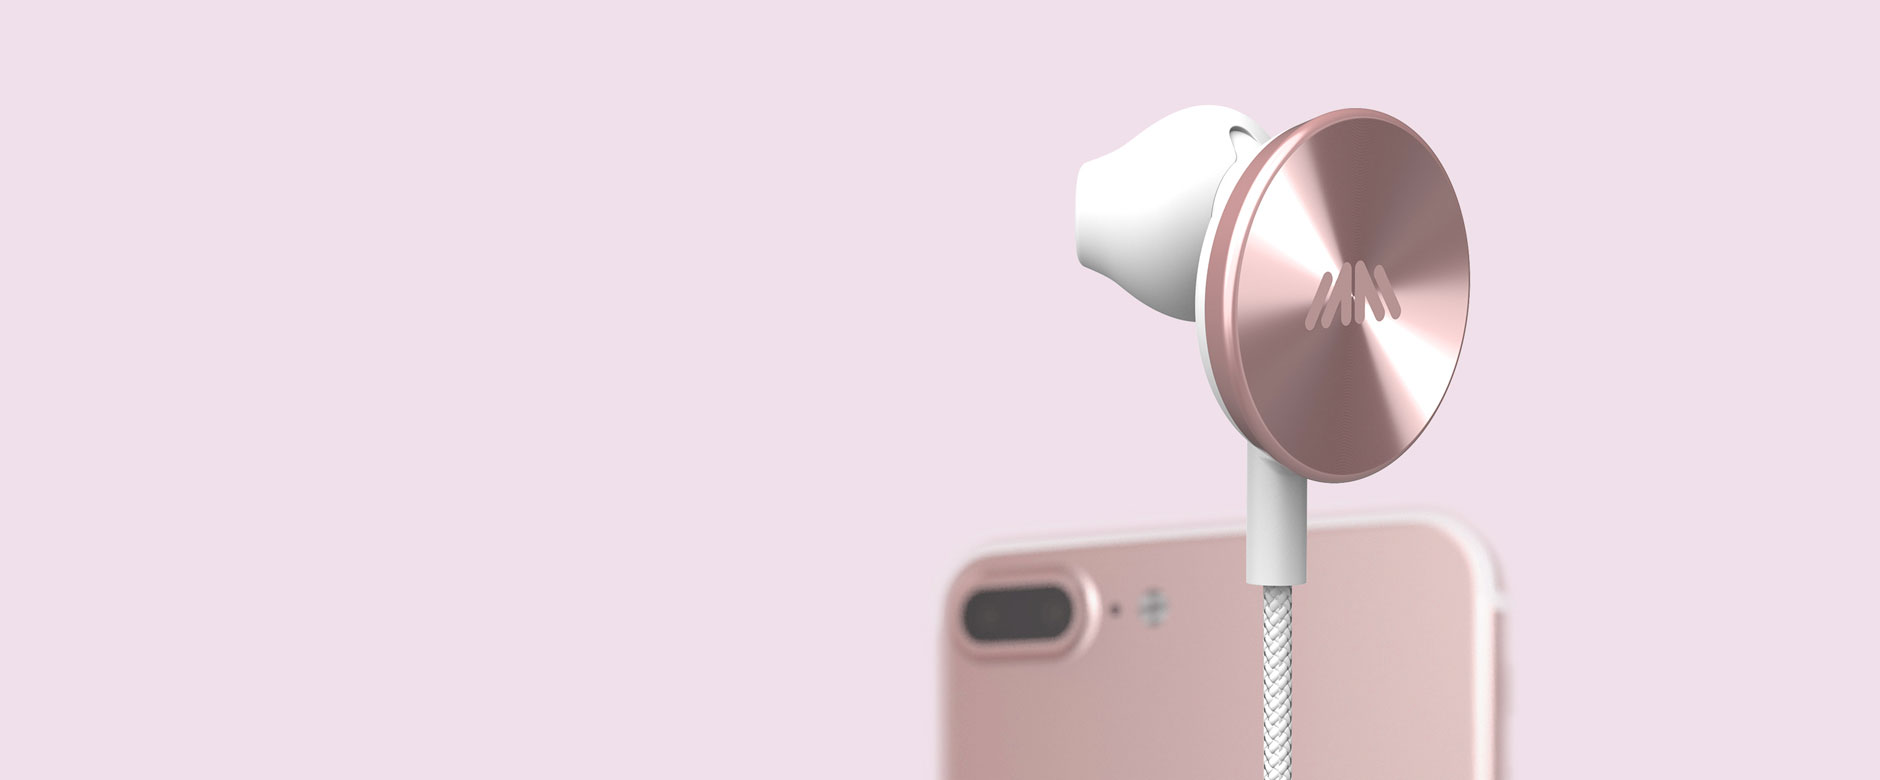 <q>THE BEST WIRELESS HEADPHONES TO PAIR WITH THE IPHONE 7.</q><img class='vogue-logo' src='images/home/carousel/vogue-logo.svg' />